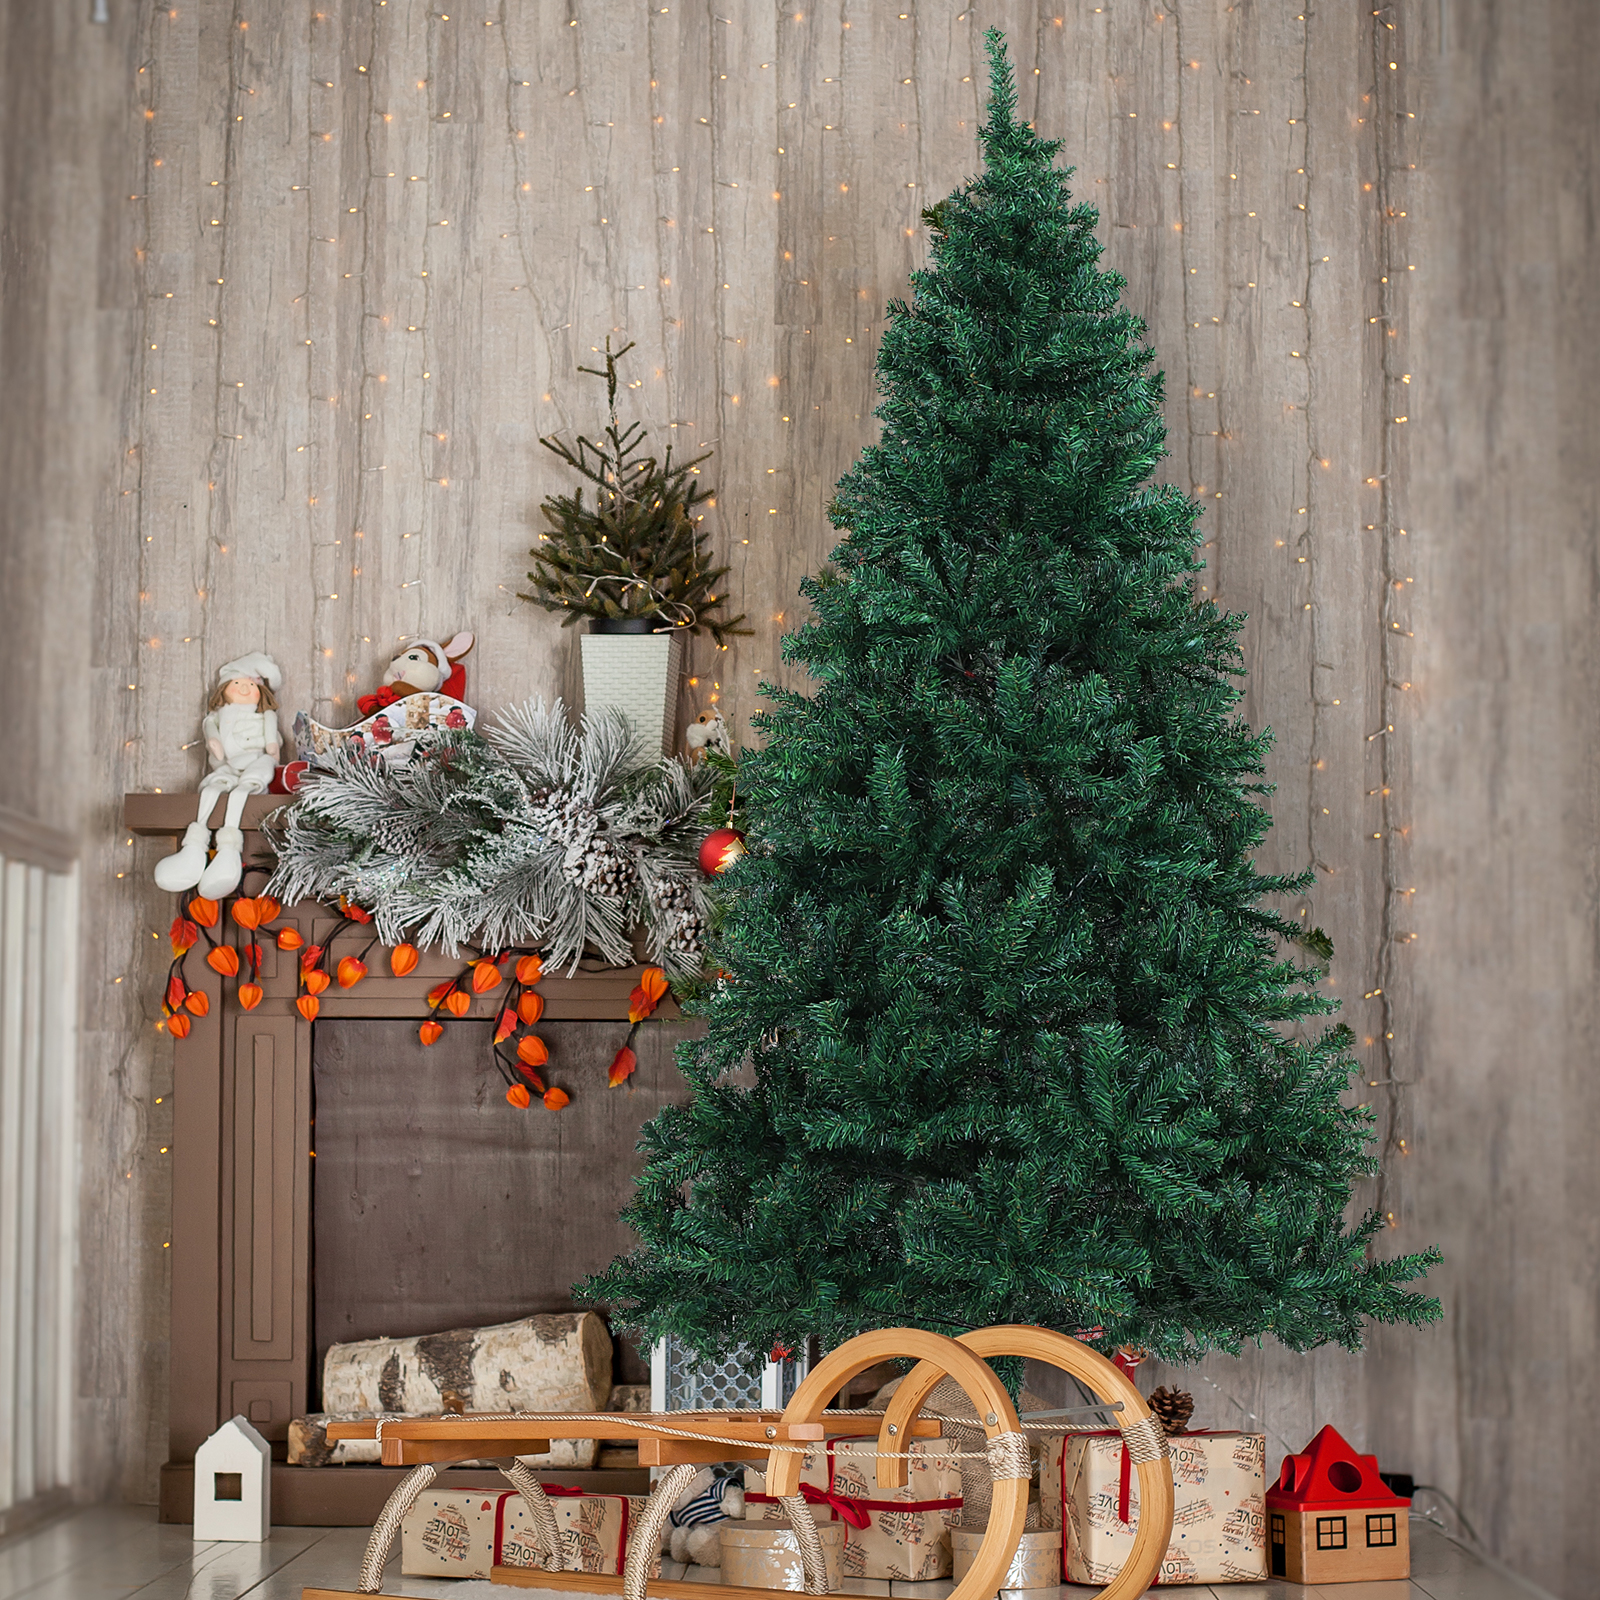 Most Realistic Artificial Christmas Tree.Details About 6 Unlit Spruce Artificial Christmas Tree With Metal Stand 1000 Tips Pvc